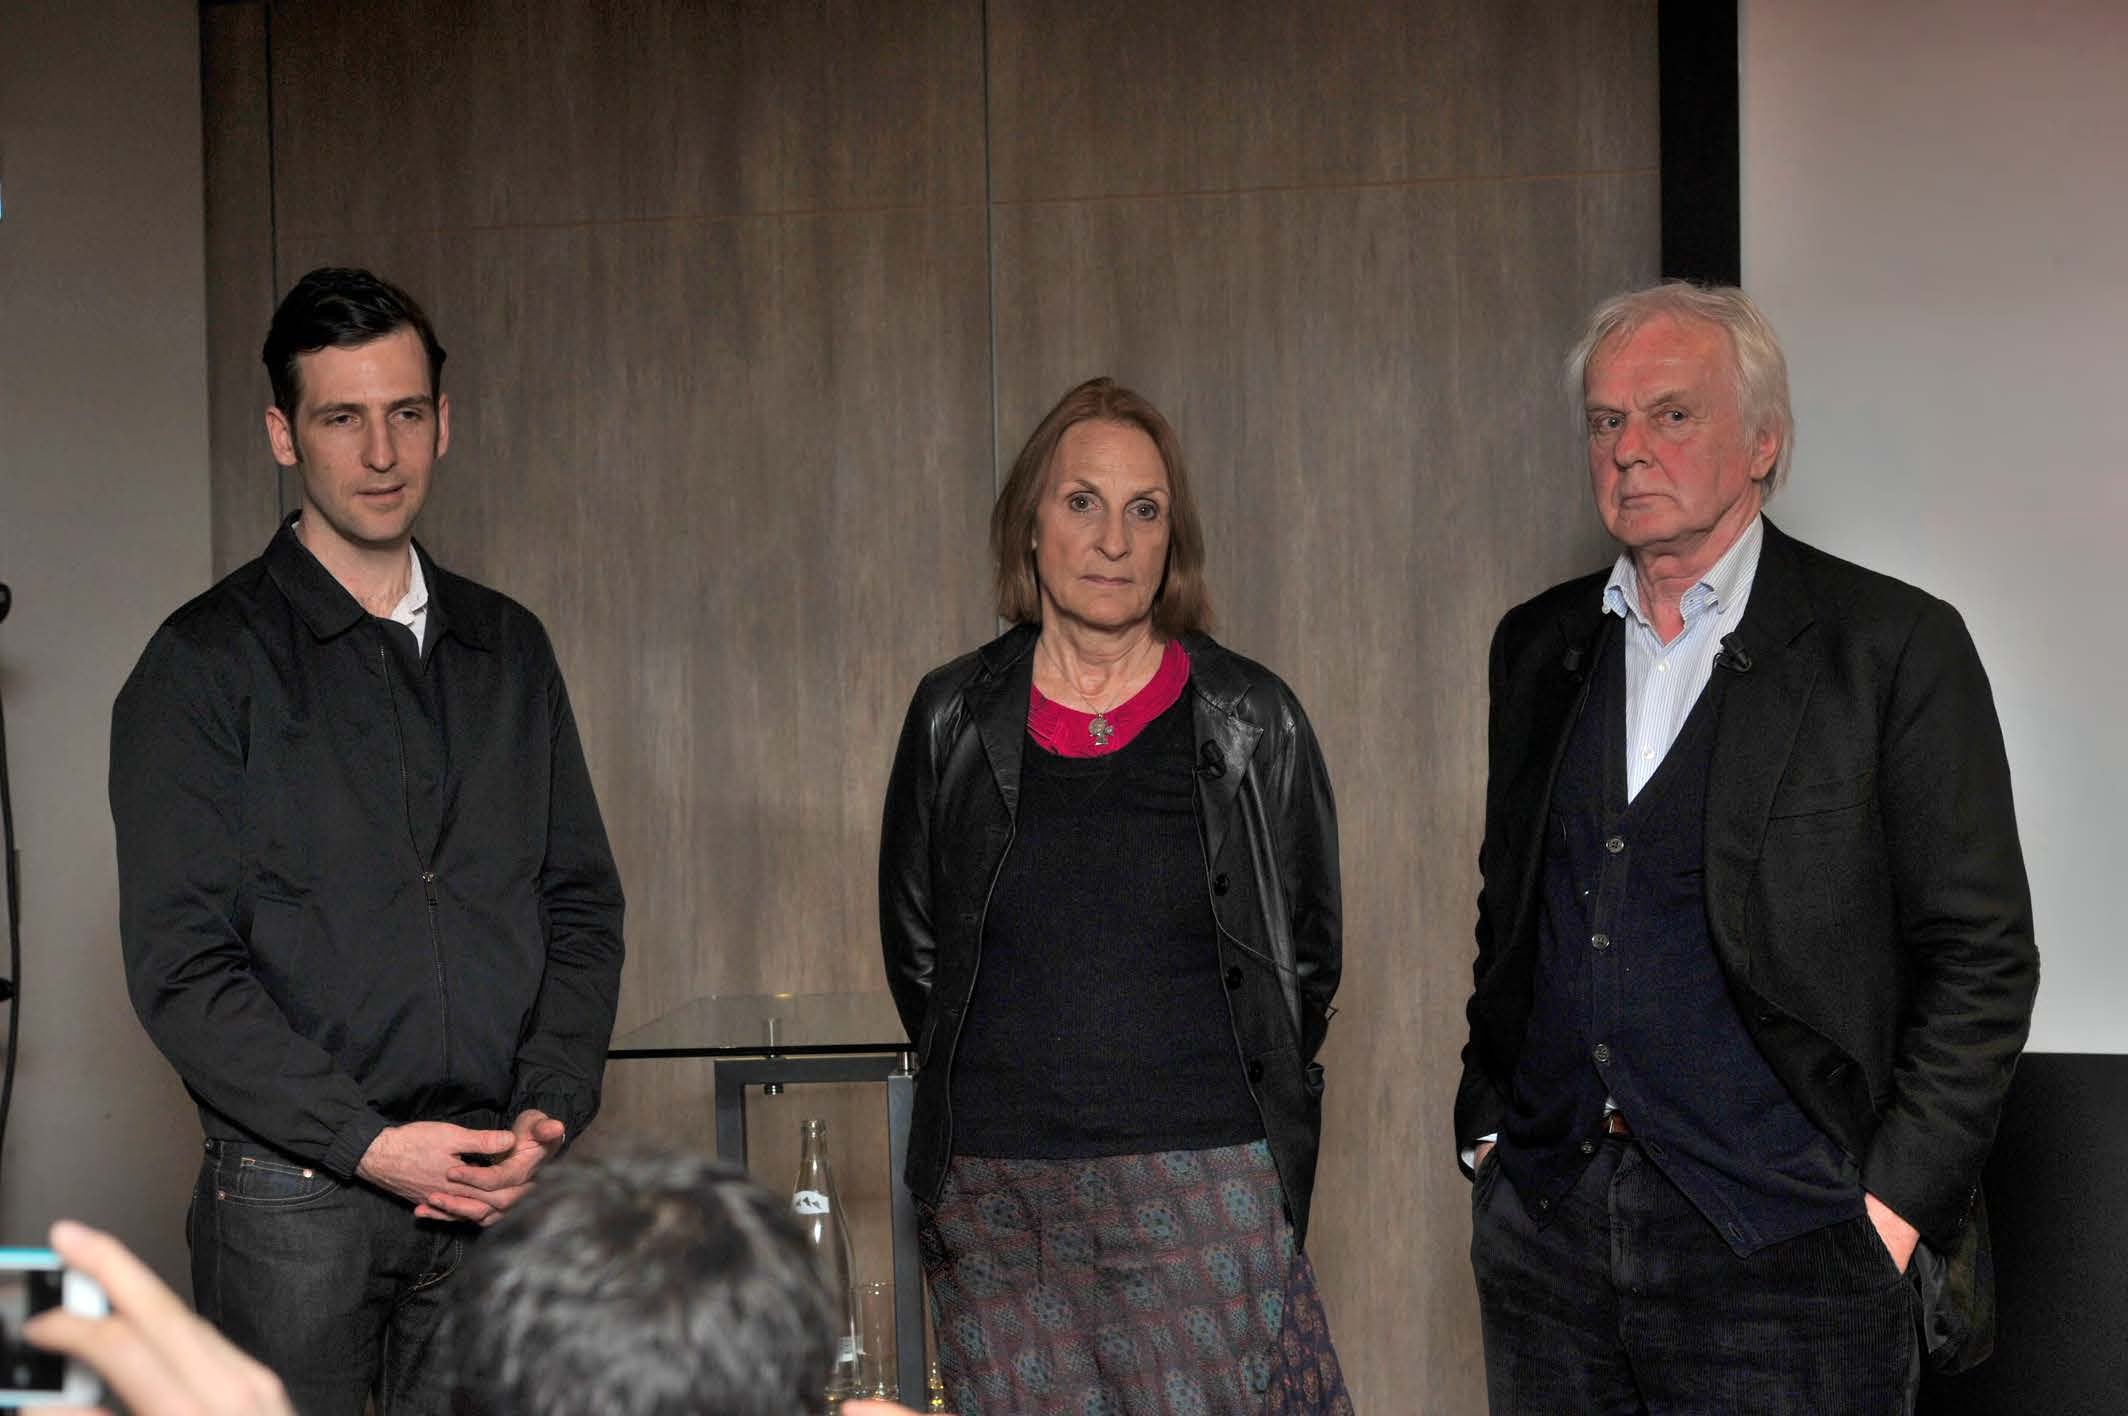 NSU director Florian Cossen (left) with producer Gabriela Sperl and Beta's Jan Mojto